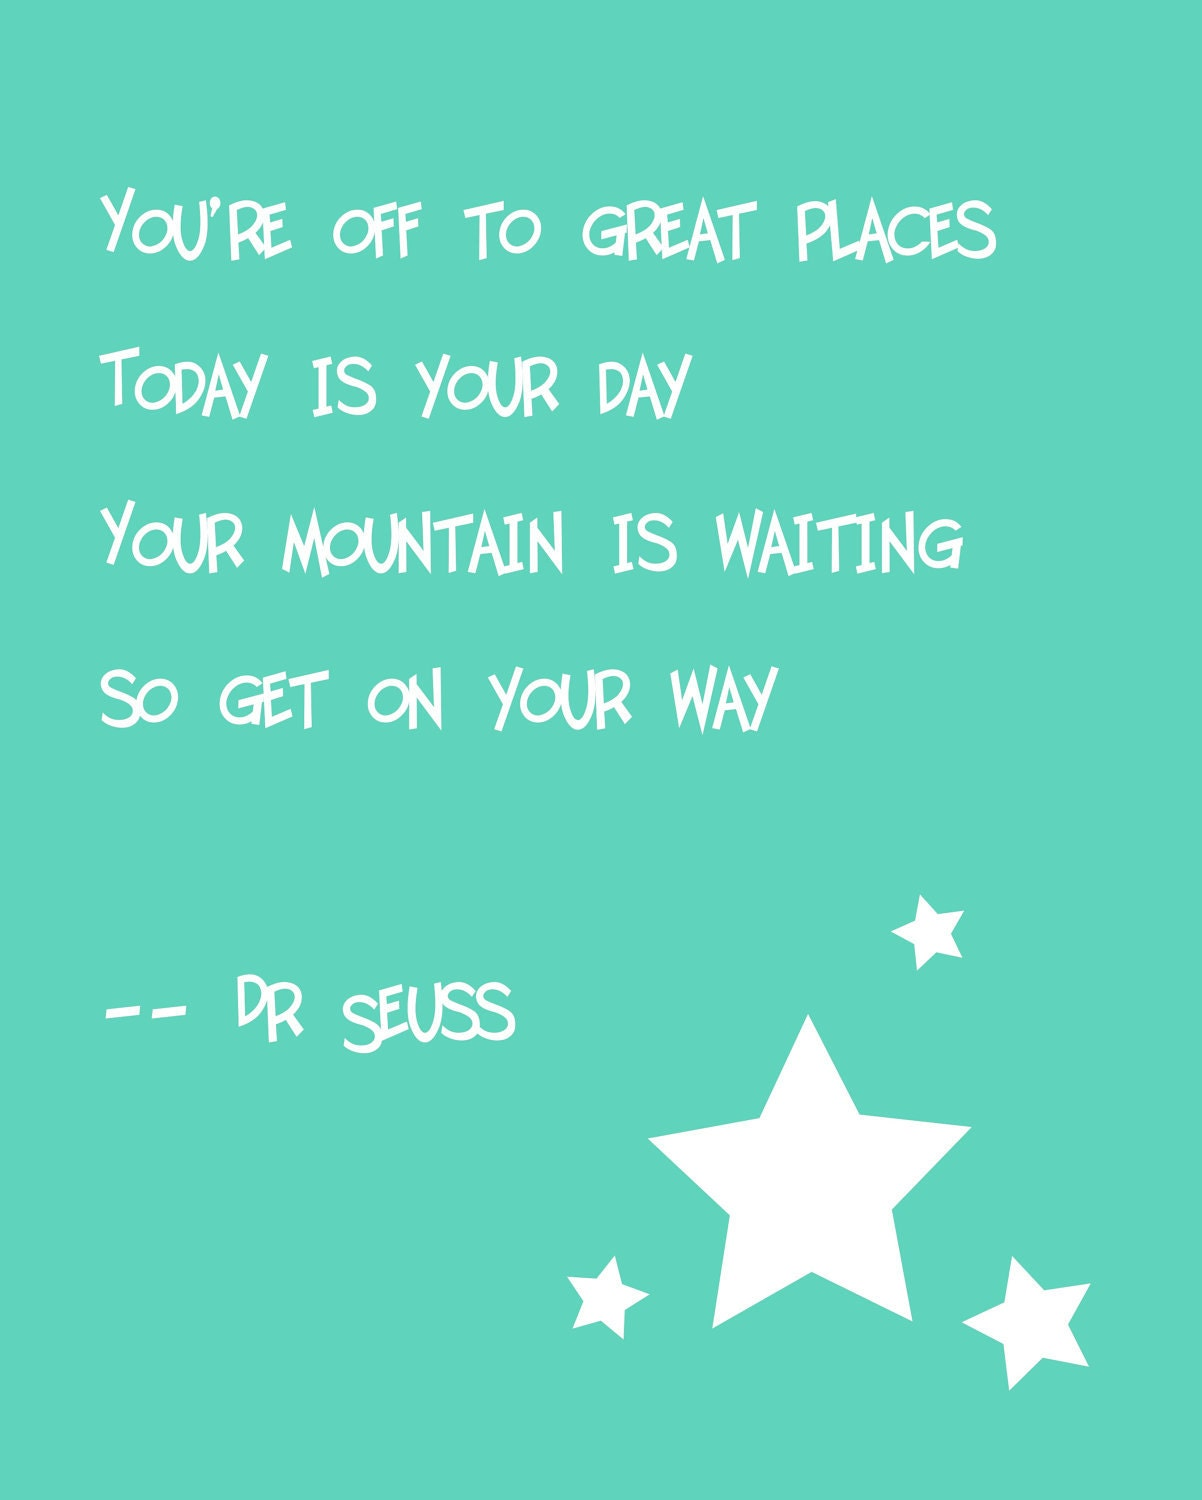 Quotes Positive Education Dr Seuss Quotes Quotesgram. Mom Quotes Tupac. Marilyn Monroe Quotes Wall Art. Disney Quotes On Magic. Harry Potter Quotes Test. Friendship Quotes Video Download. Mom Quotes Rip. Quotes Of Adventure Time. Motivational Quotes Runners